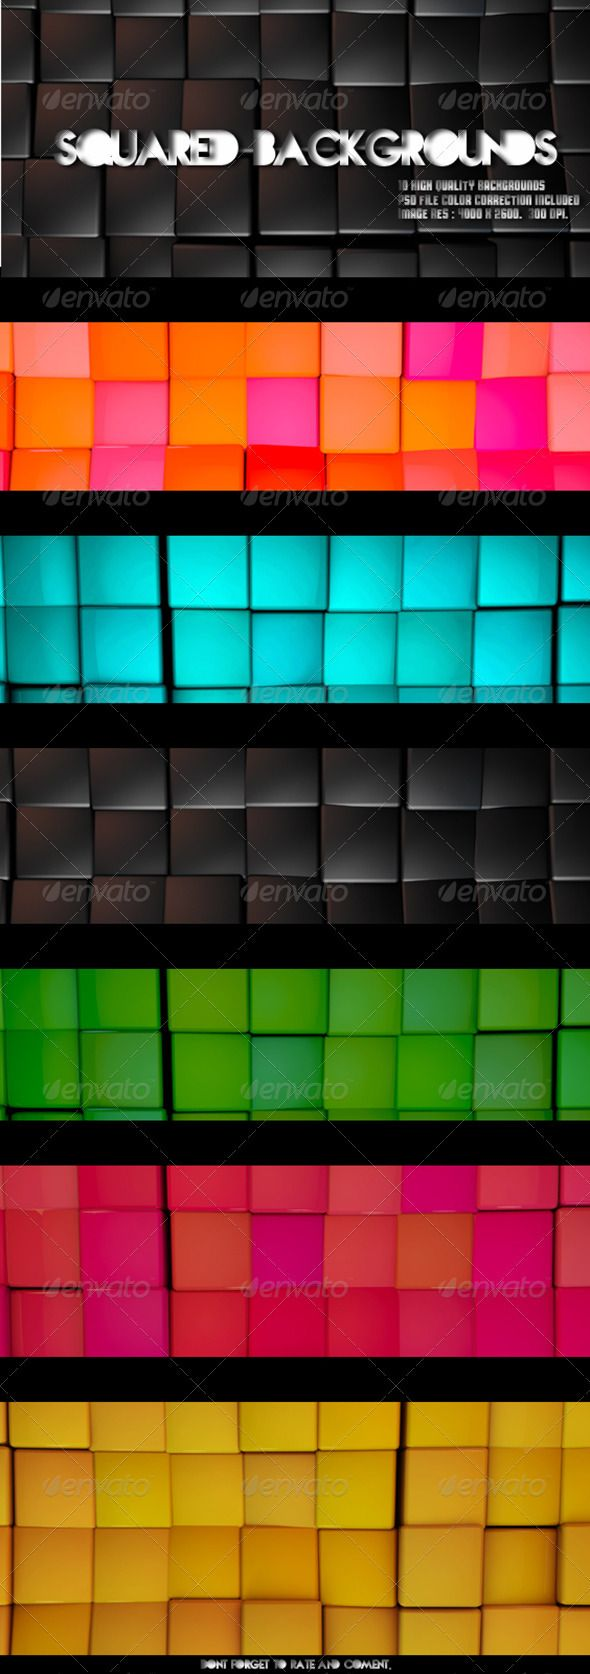 Square Backgrounds - 10 High Quality Backgrounds